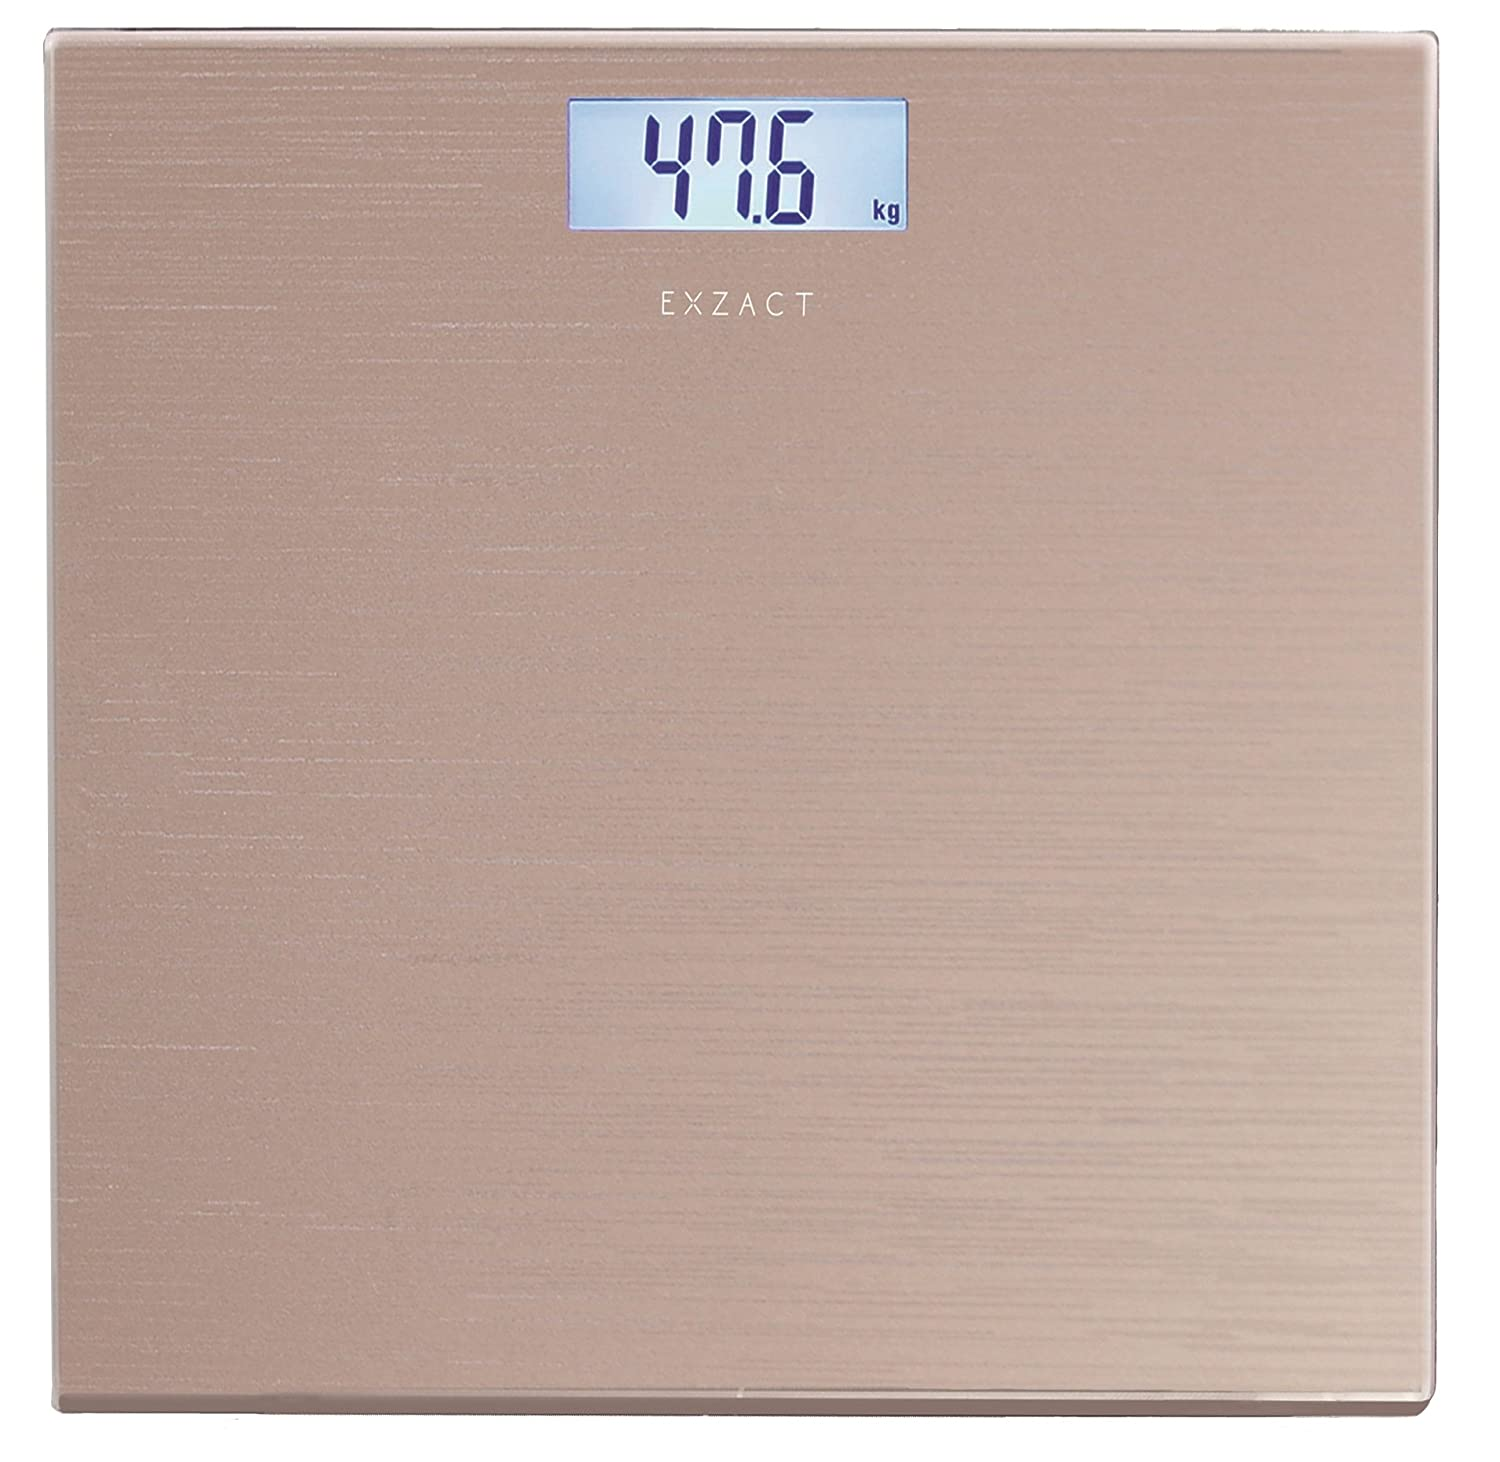 EXZACT Bathroom Scale / Peronal Scale/ Digital Weighing Scale - Large Capacity 180kg / 400lb /28st - High Precision, Step-on, Backlight LCD Display, High Quality Tempered Glass Platform, Slim and Smart Design (Black) Exerz Limited